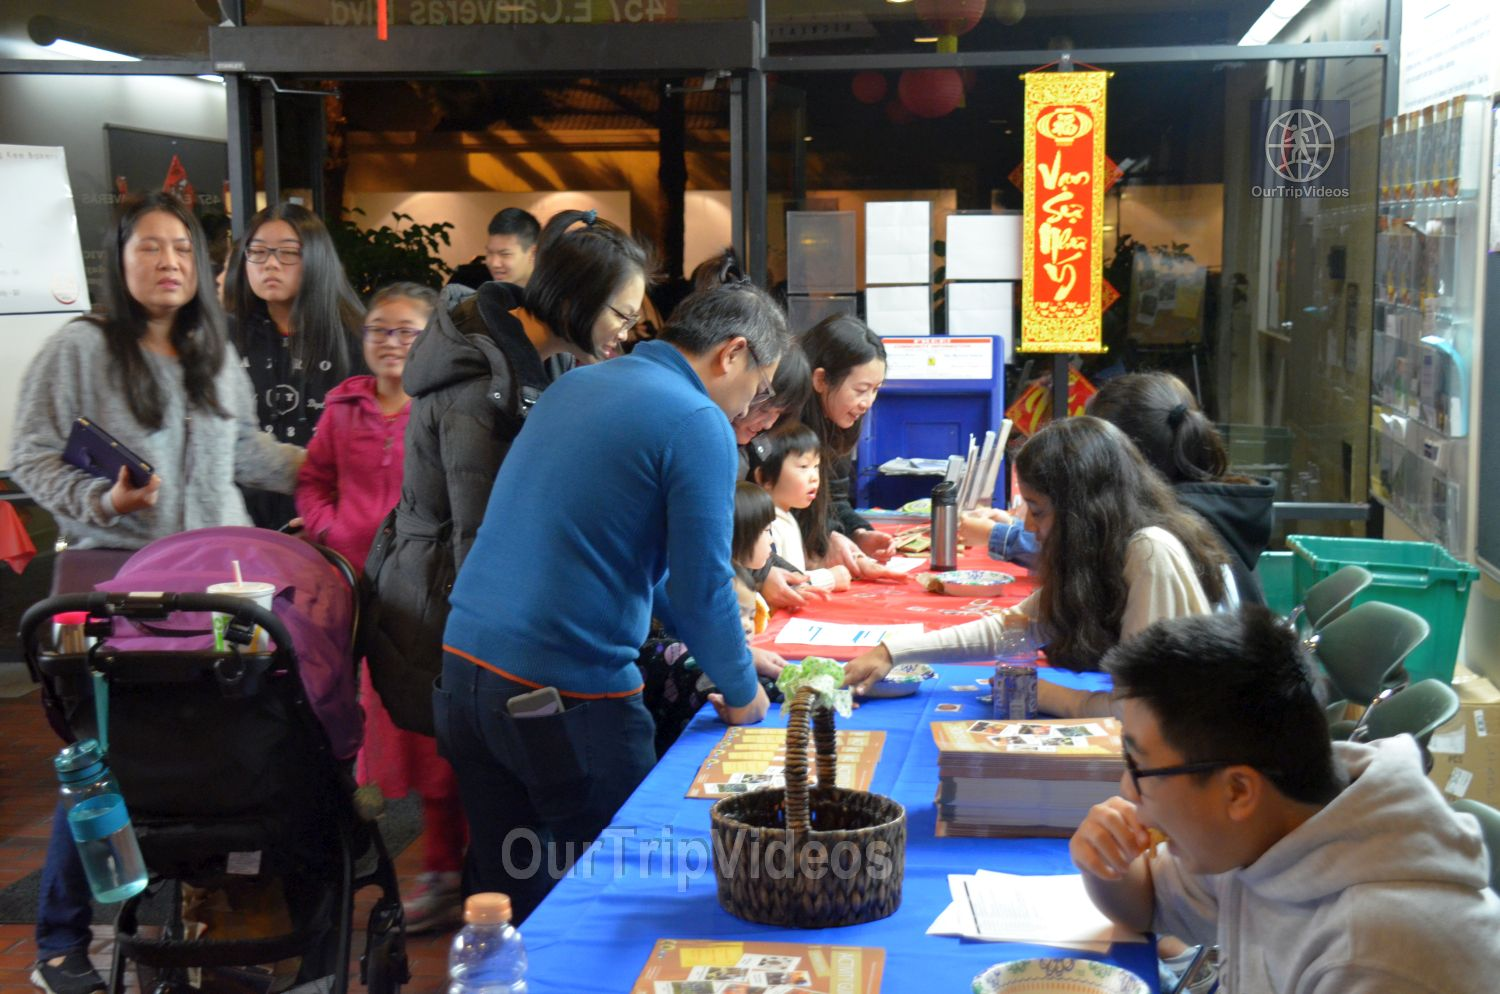 Chinese Lunar New Year Celebration, Milpitas, CA, USA - Picture 7 of 25